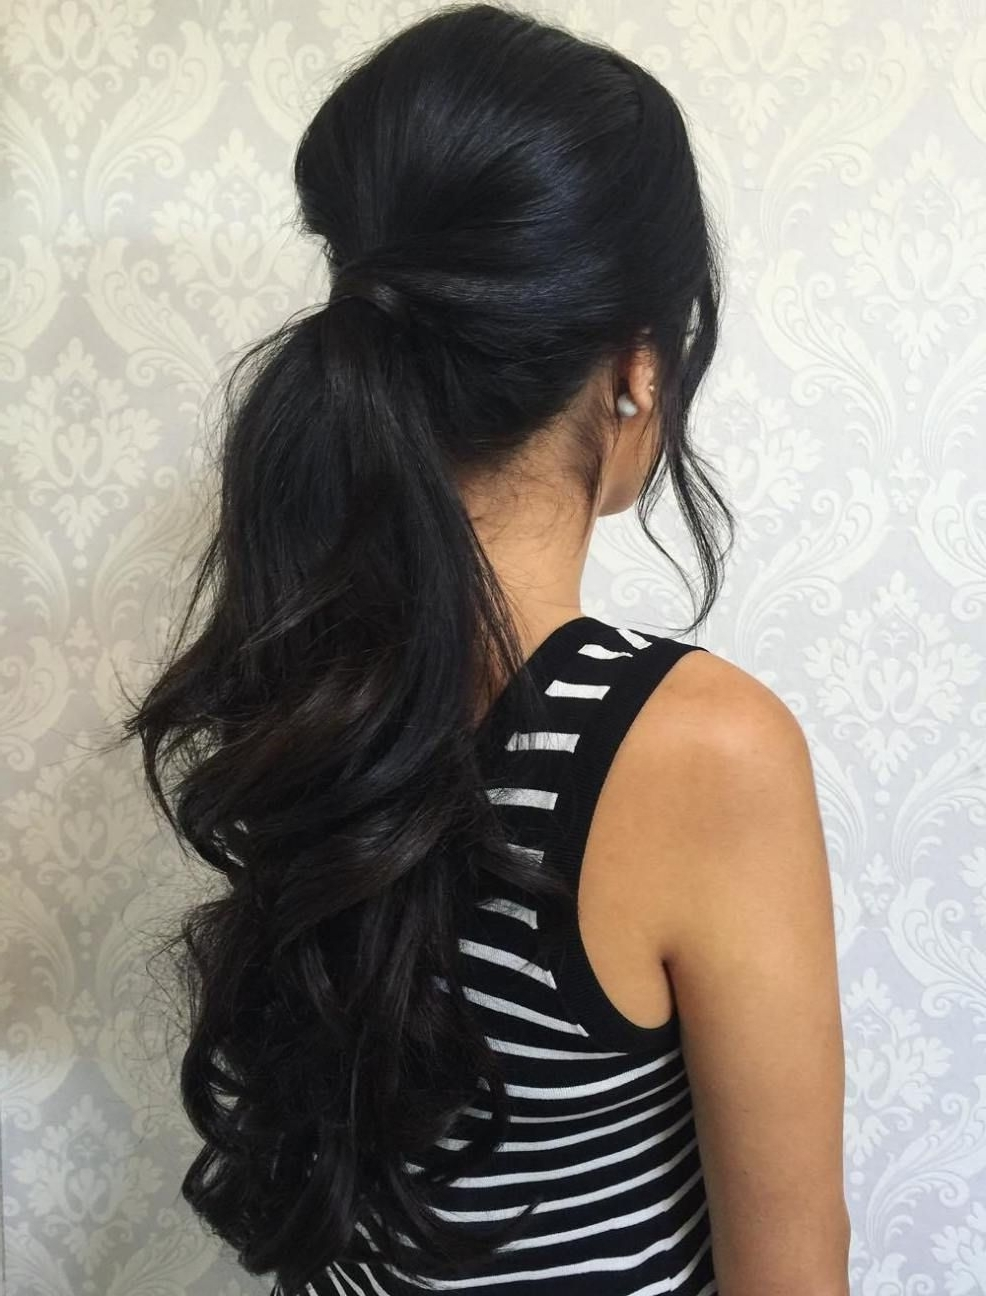 2018 Embellished Drawstring Ponytail Hairstyles Regarding 30 Eye Catching Ways To Style Curly And Wavy Ponytails (View 1 of 20)